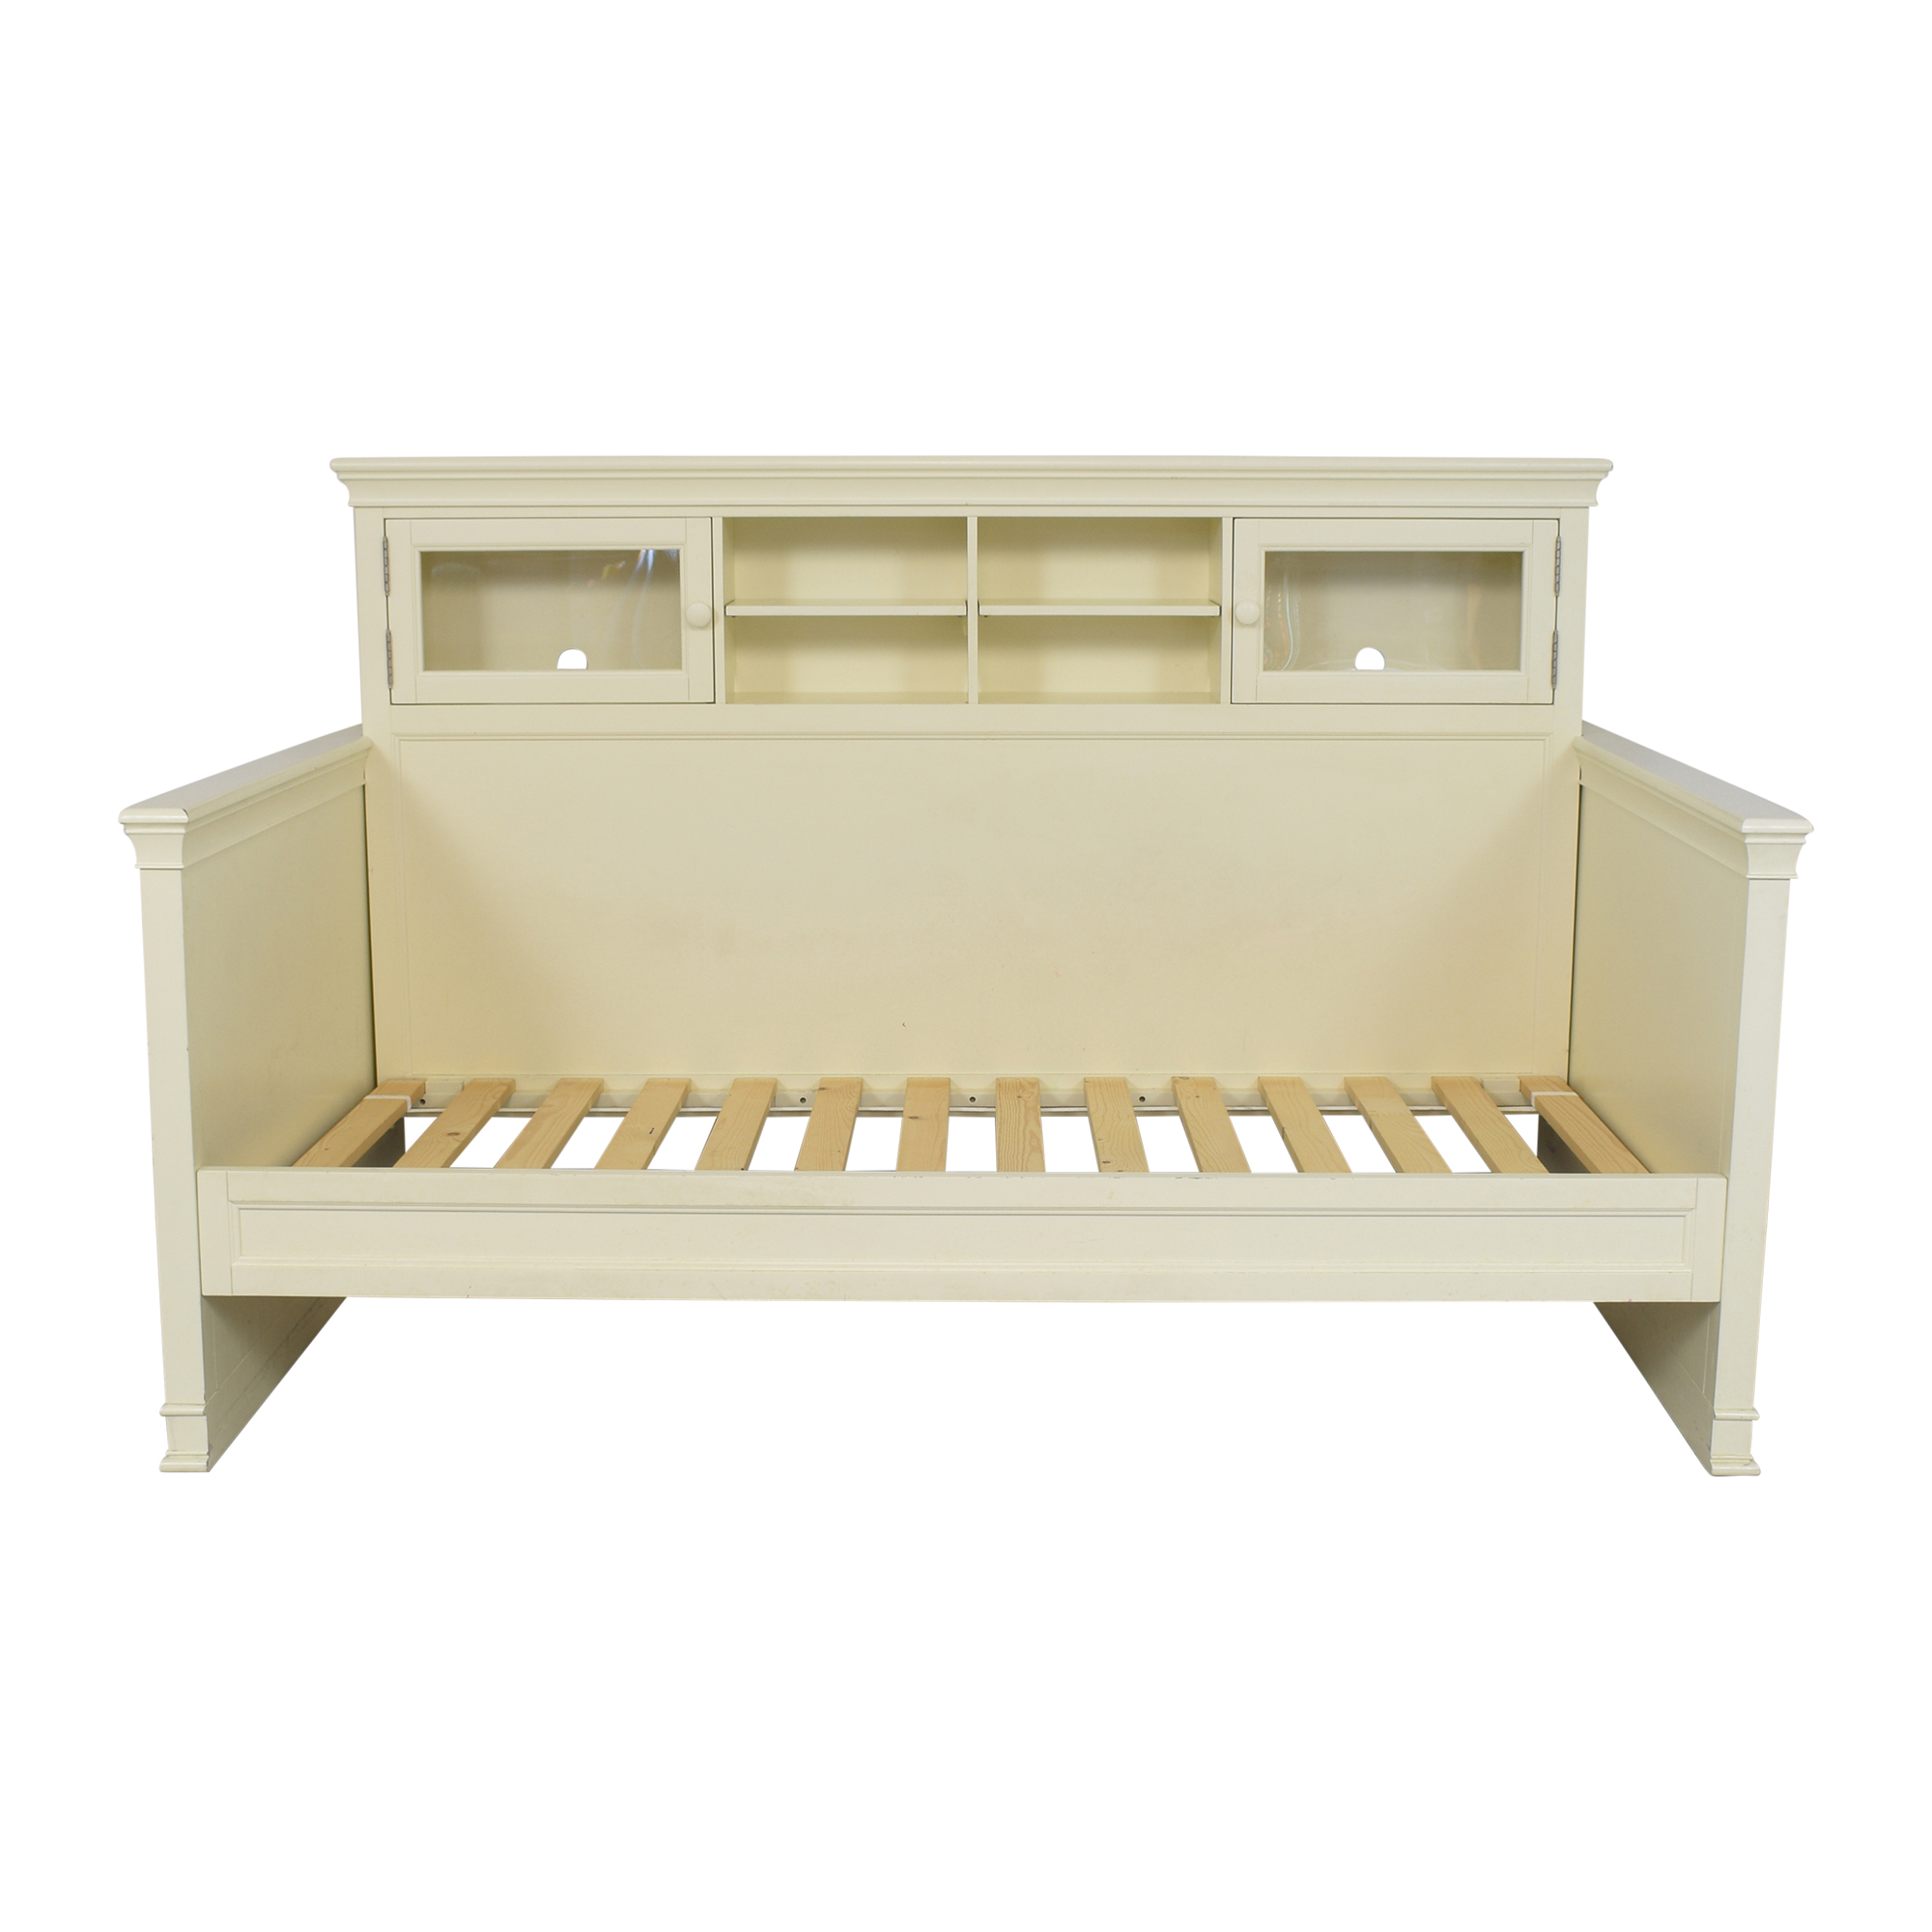 Pottery Barn Teen Pottery Barn Teen Display-It Daybed discount